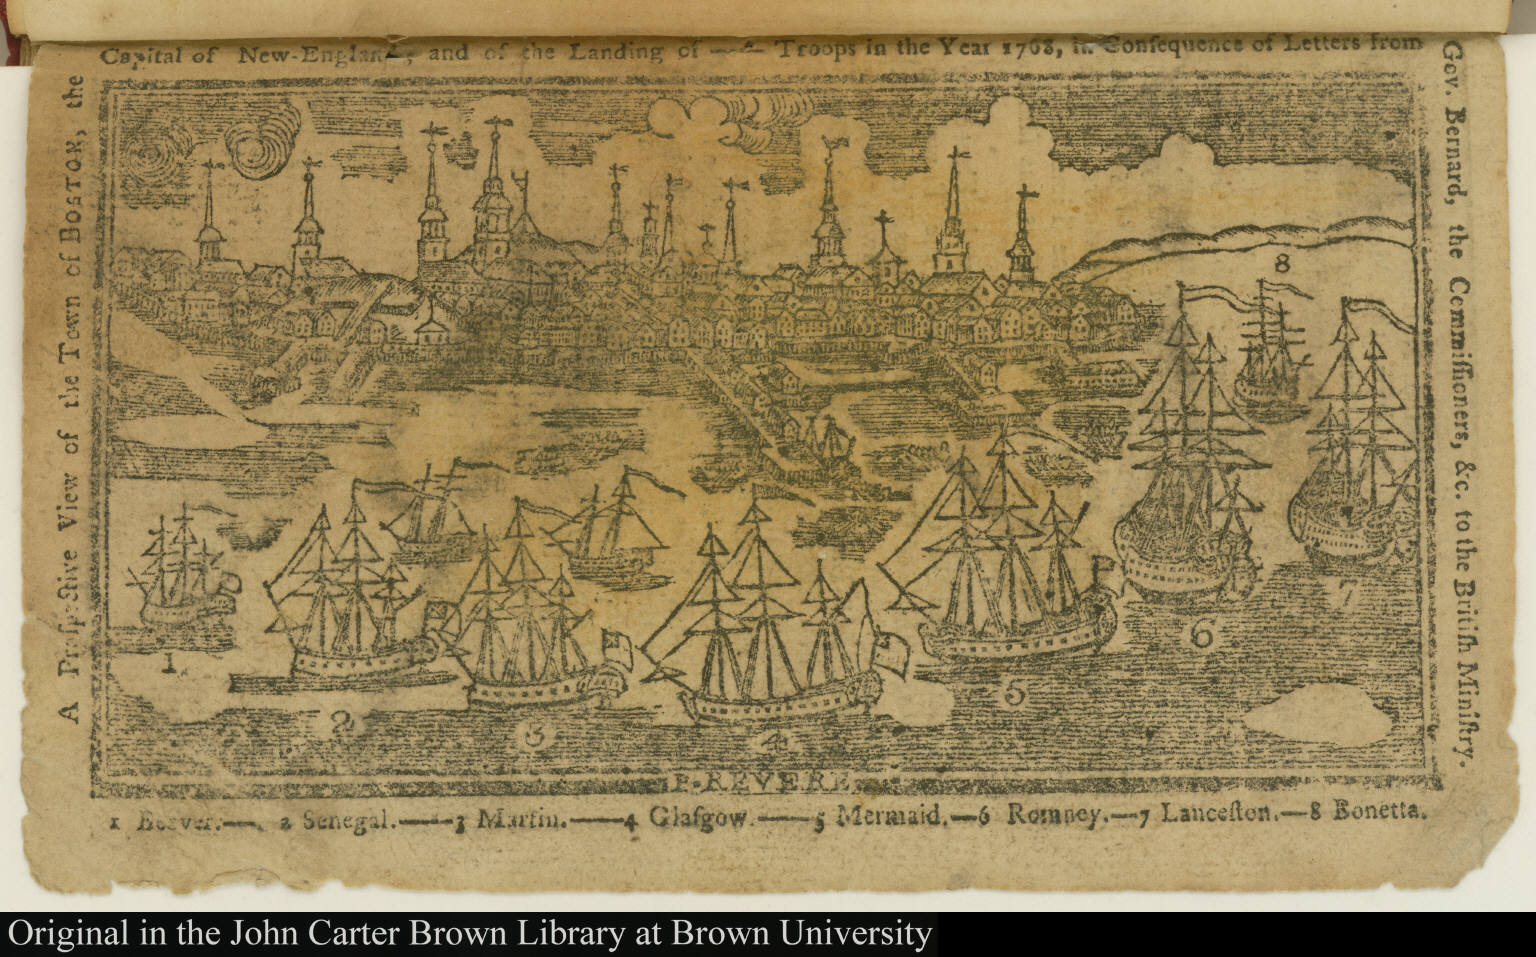 A Perspective View of the Town of Boston, the Capital of New-England, and of the Landing of --- Troops in the Year 1768 ...